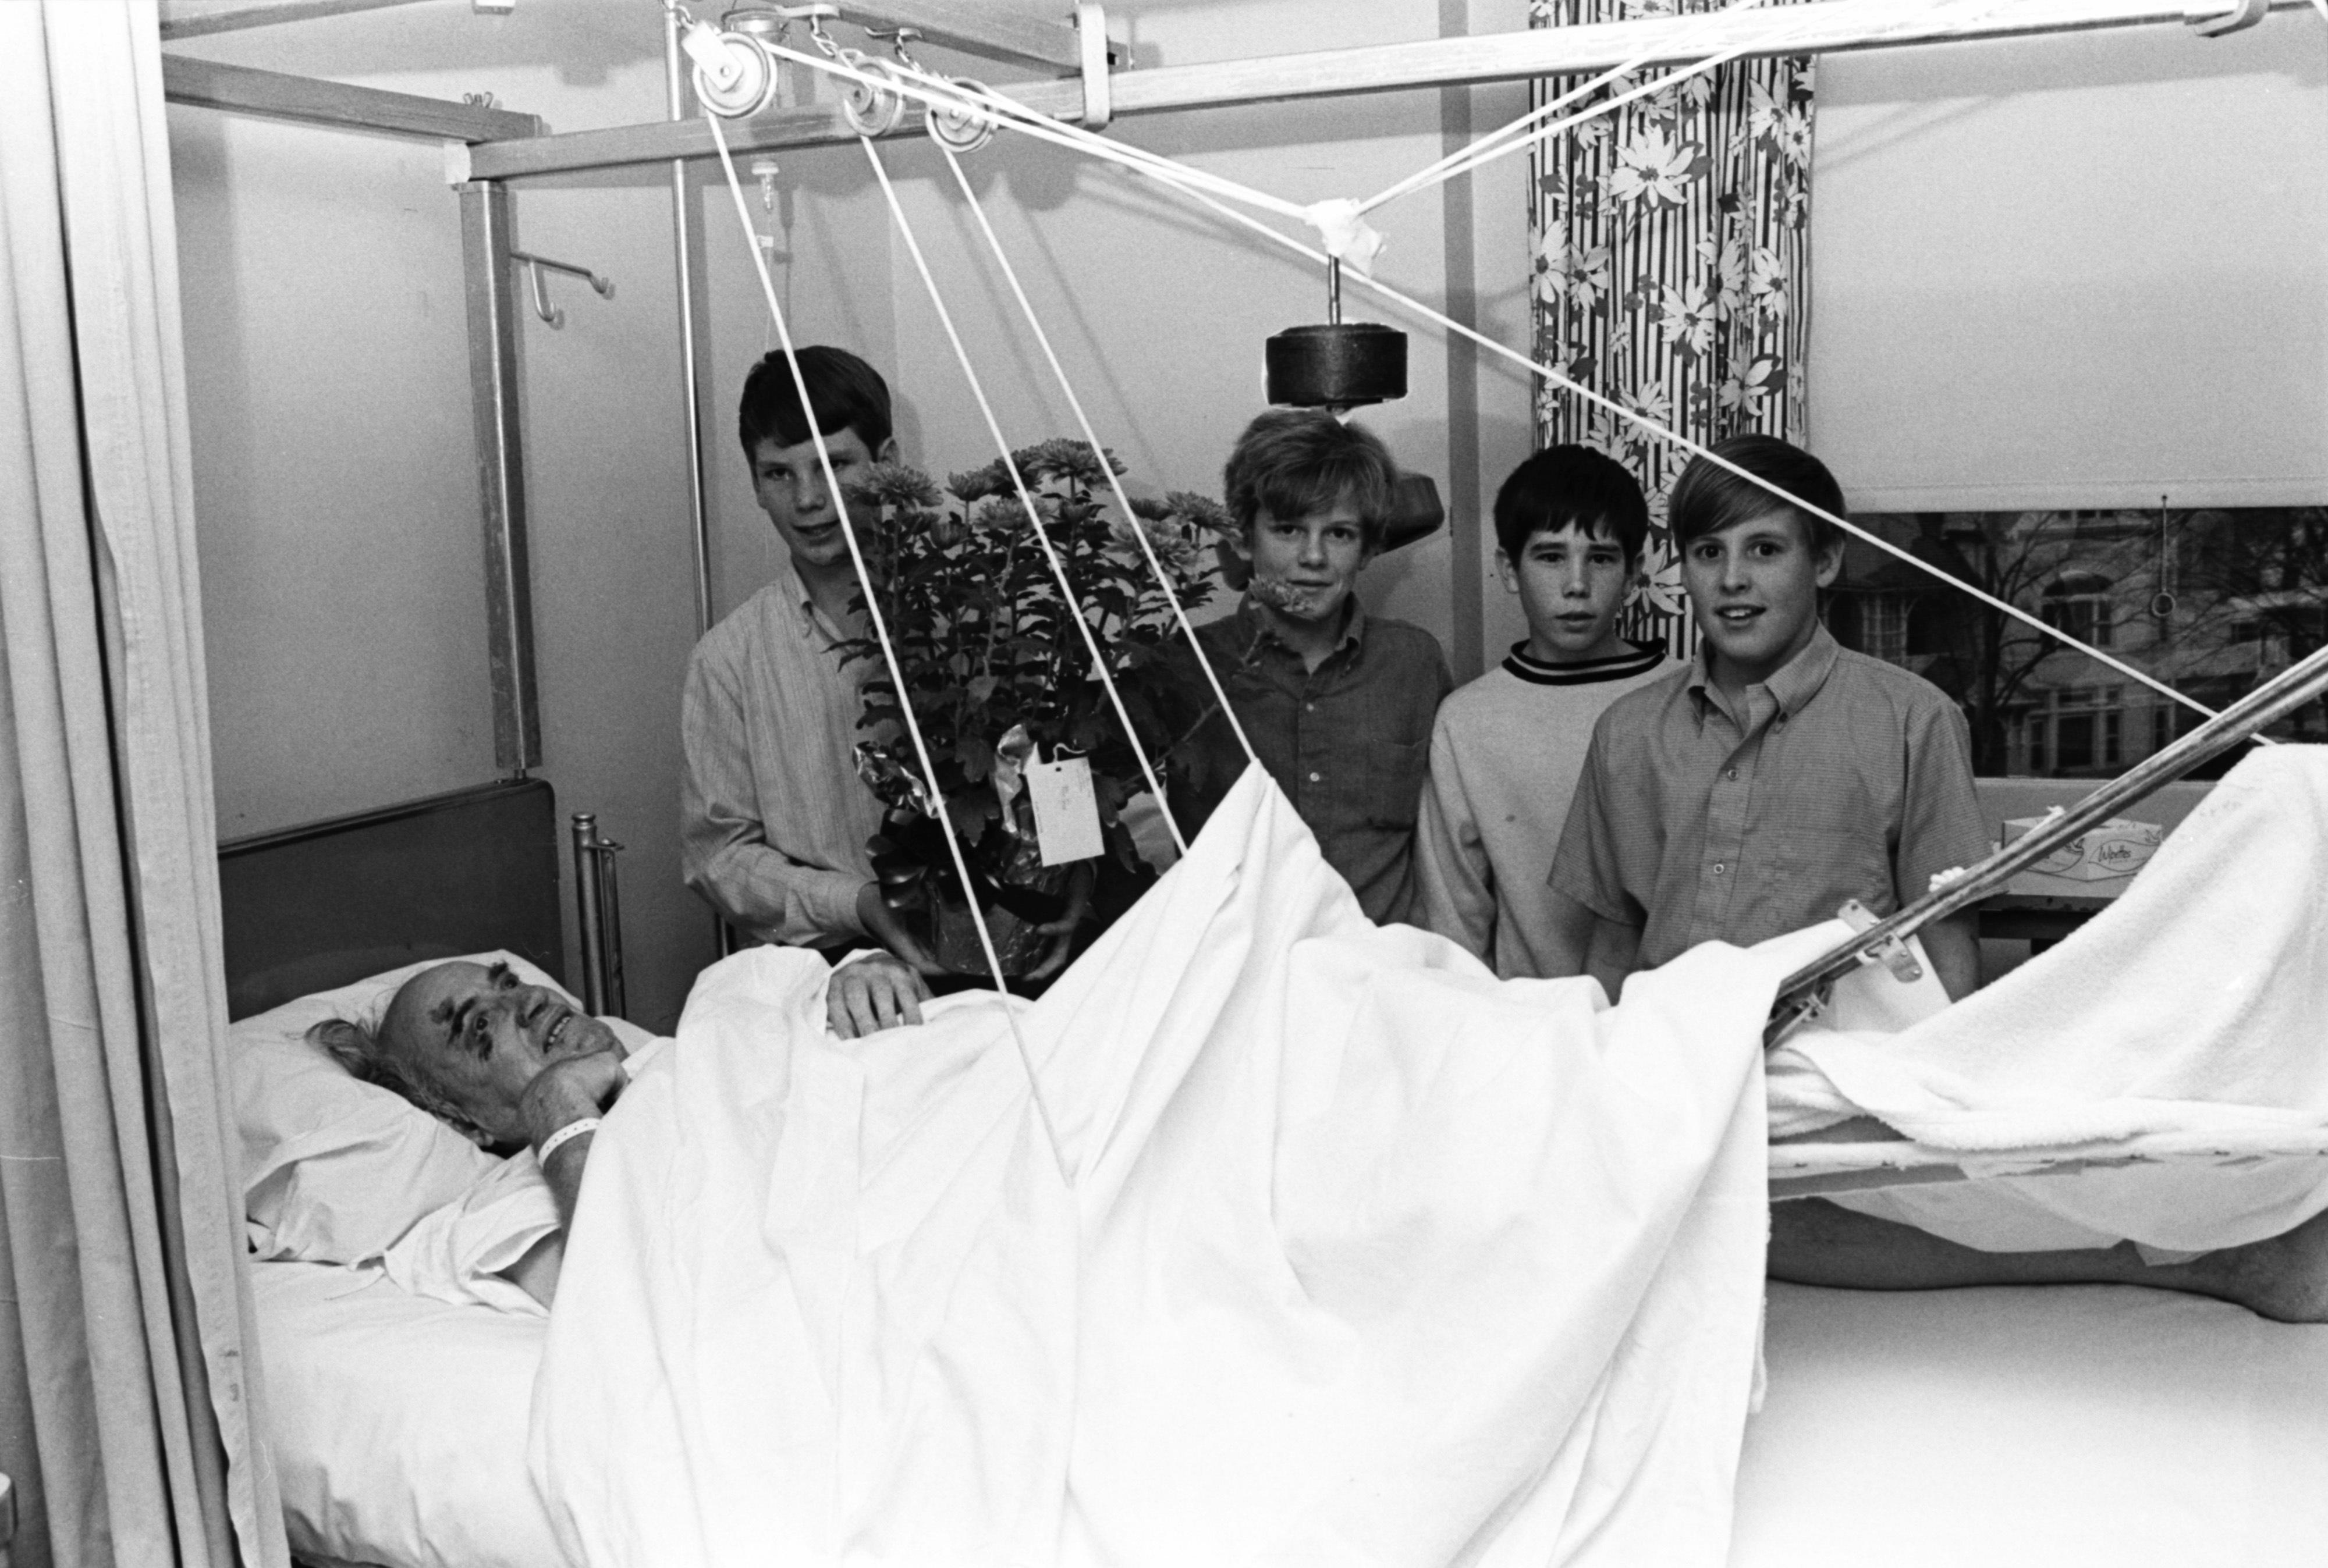 Tappan Students Visit Injured Crossing Guard in Hospital, November 1969 image